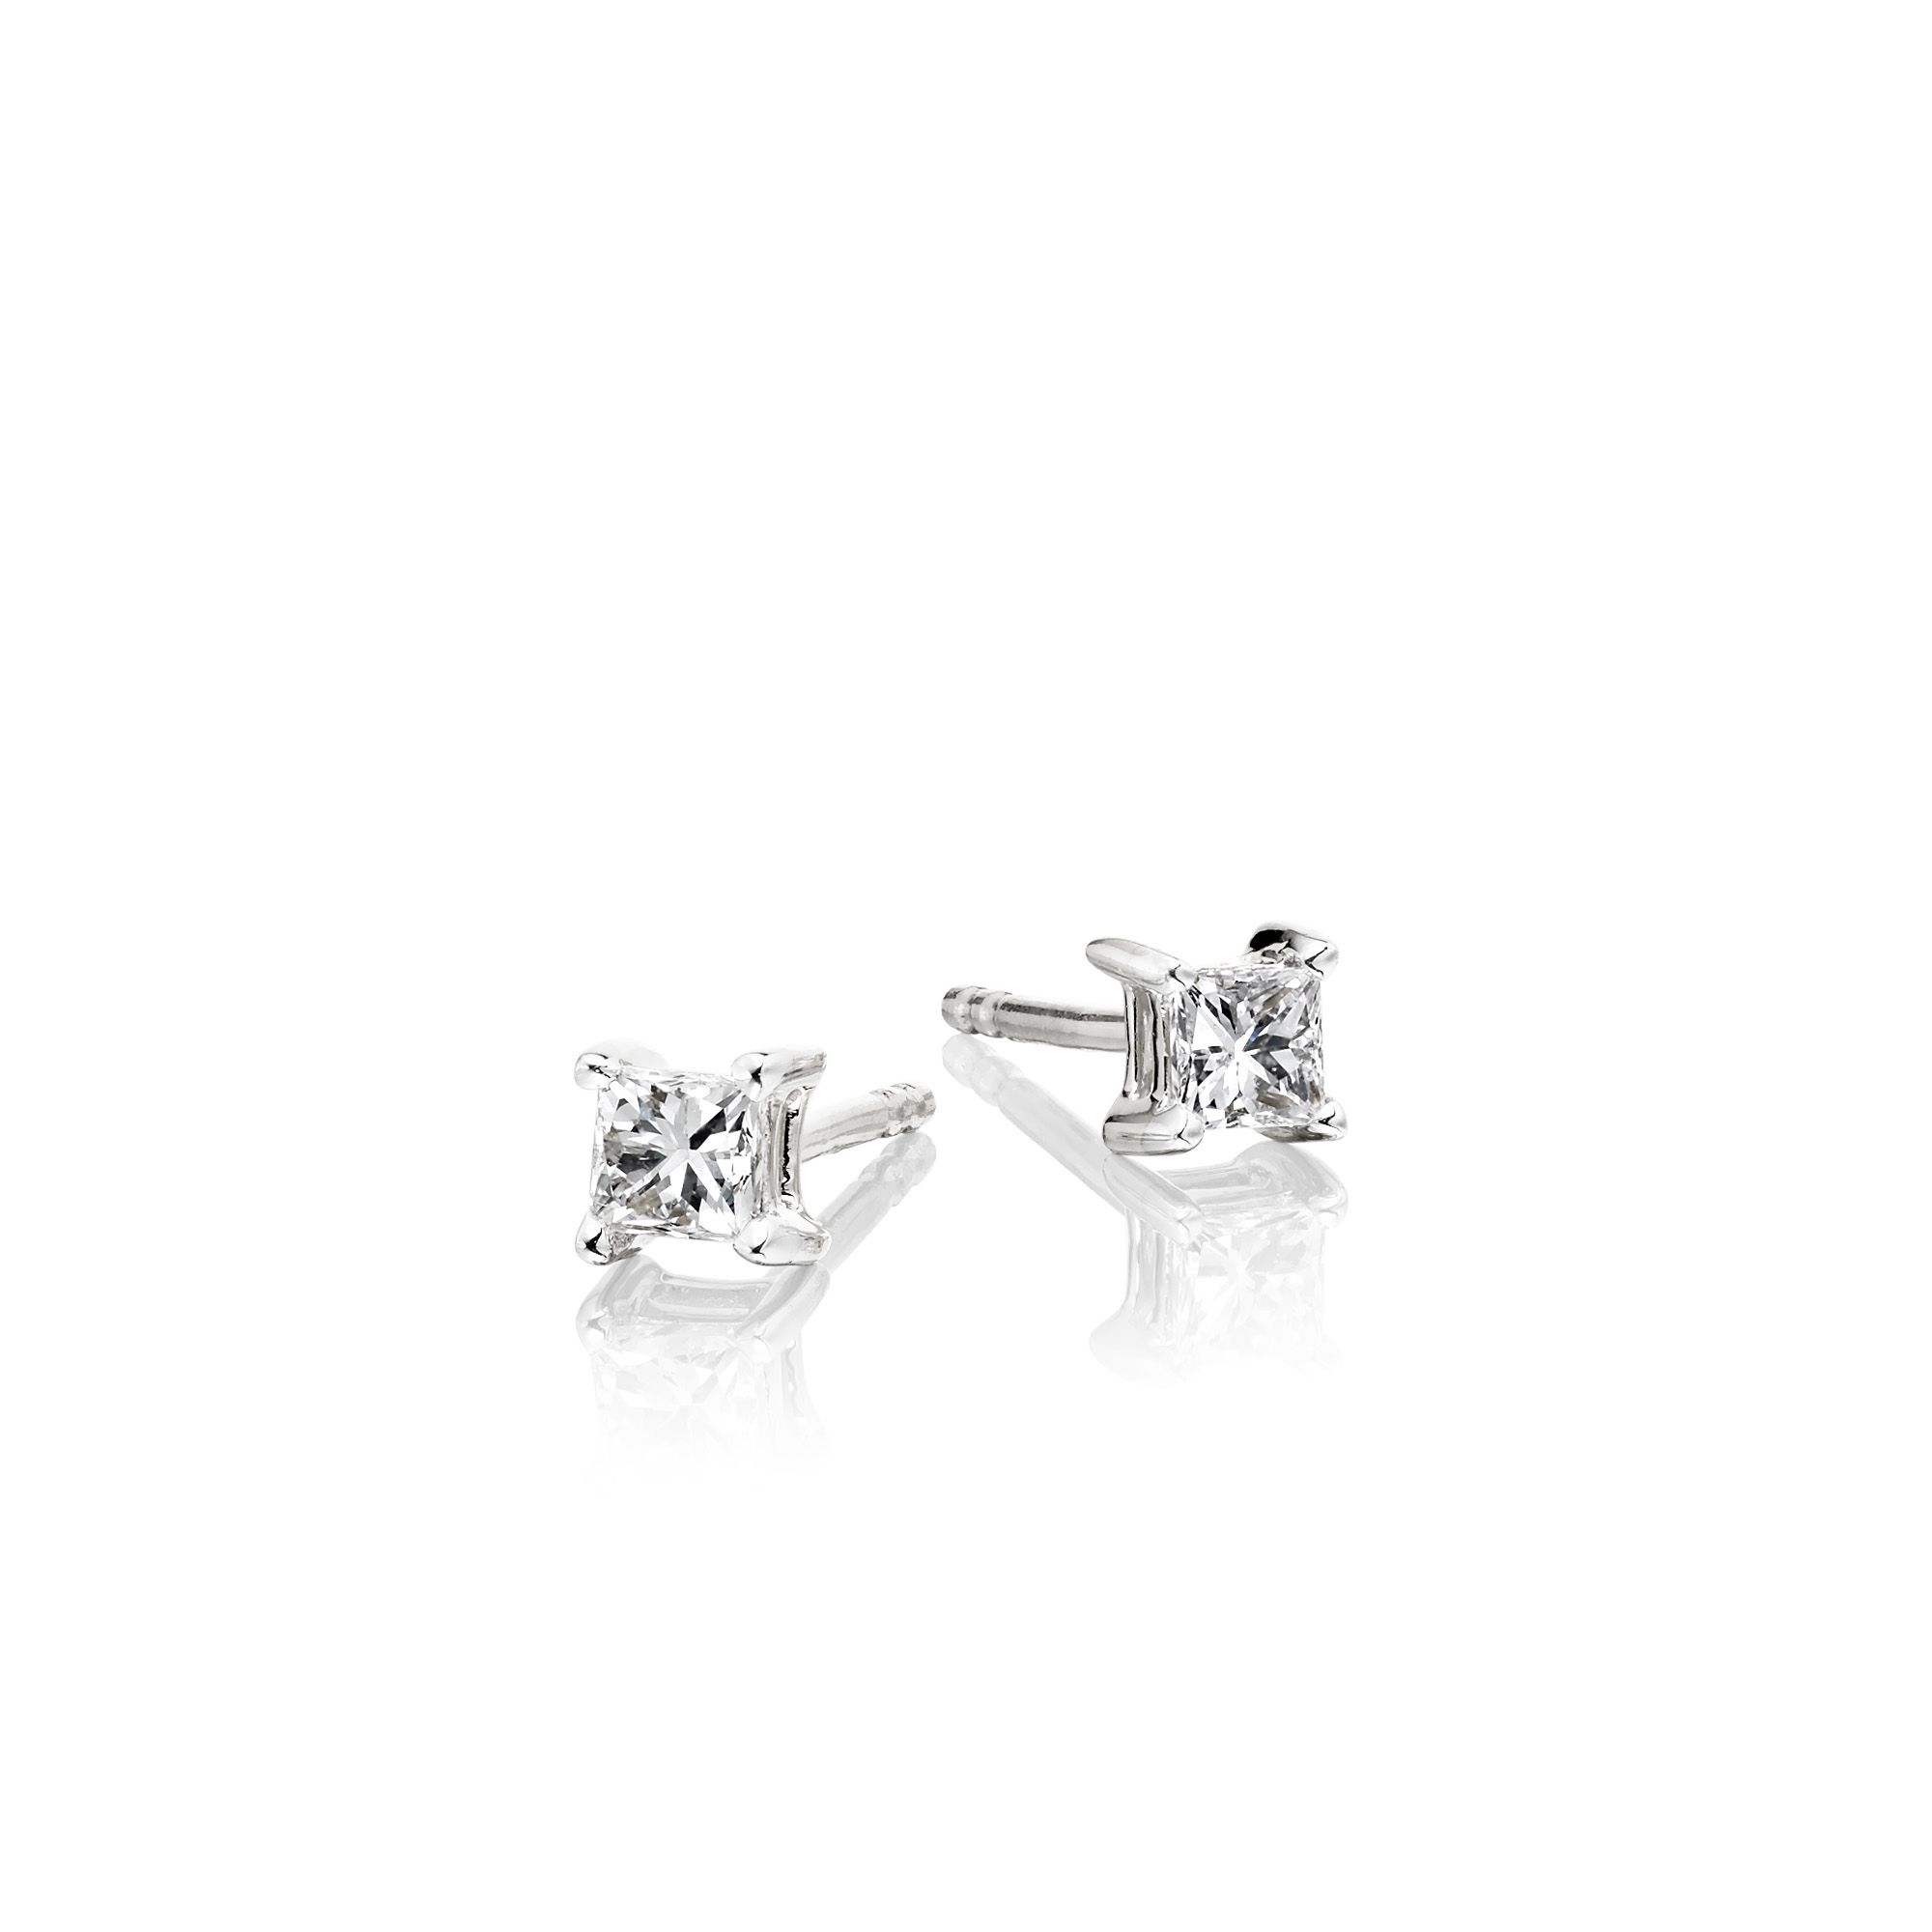 parslee modern twisting fashion earrings contemporary deco art diamond stud studs cut products cz sparkles faux round cubic zirconia beloved romantic solitaire silver